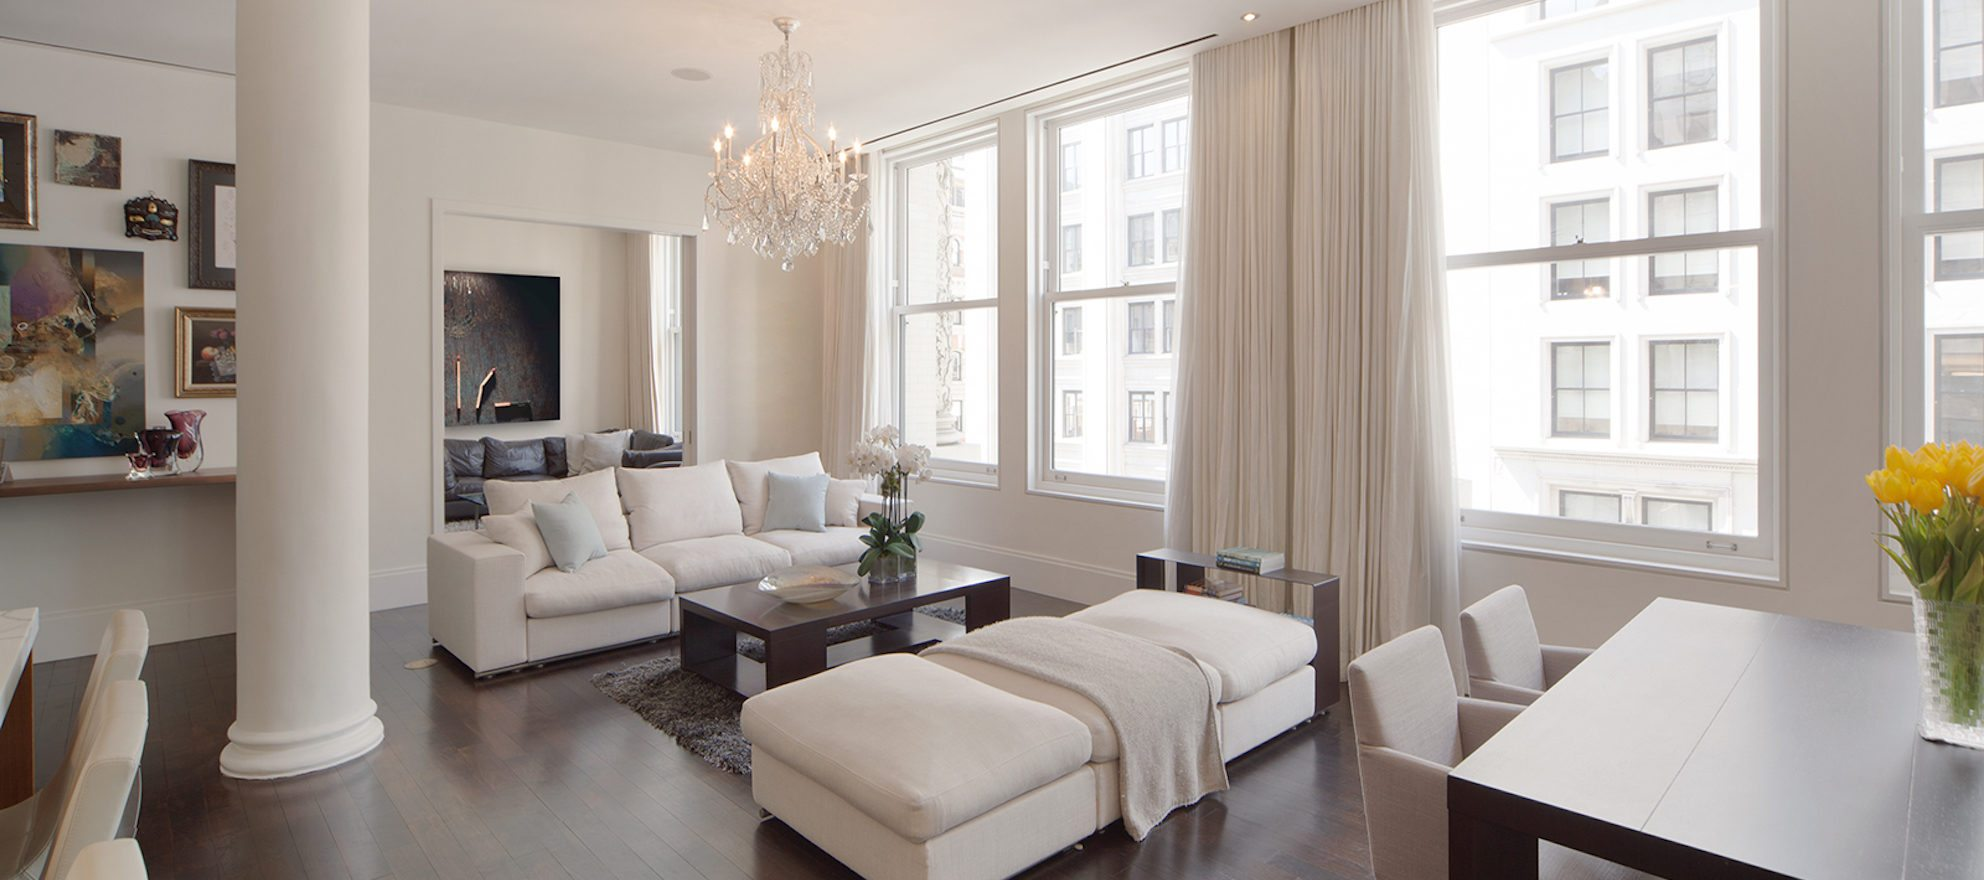 Luxury listing of the day: 4-bedroom condo in NYC's Flatiron District